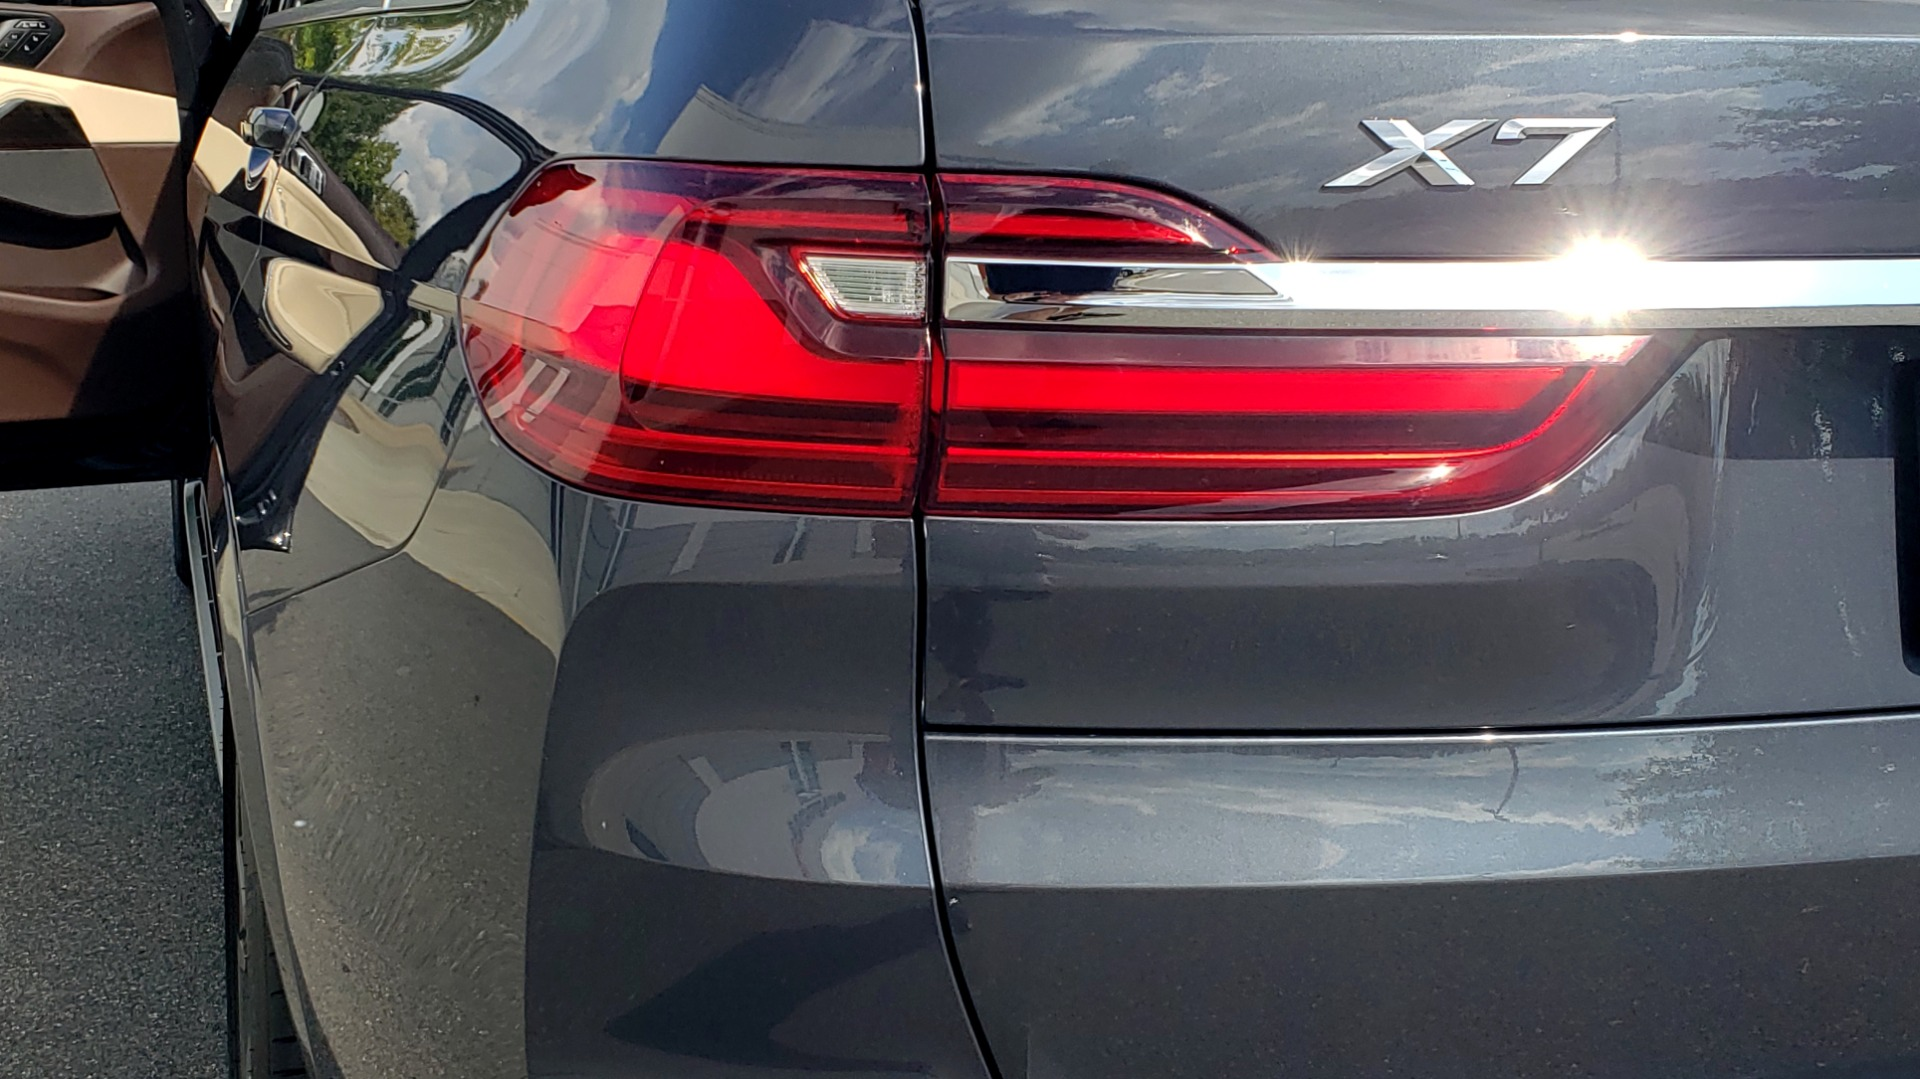 Used 2019 BMW X7 XDRIVE40I PREMIUM / LUXURY / COLD WEATHER / PARK ASST / PANORAMIC SKY / TOW for sale $75,999 at Formula Imports in Charlotte NC 28227 35